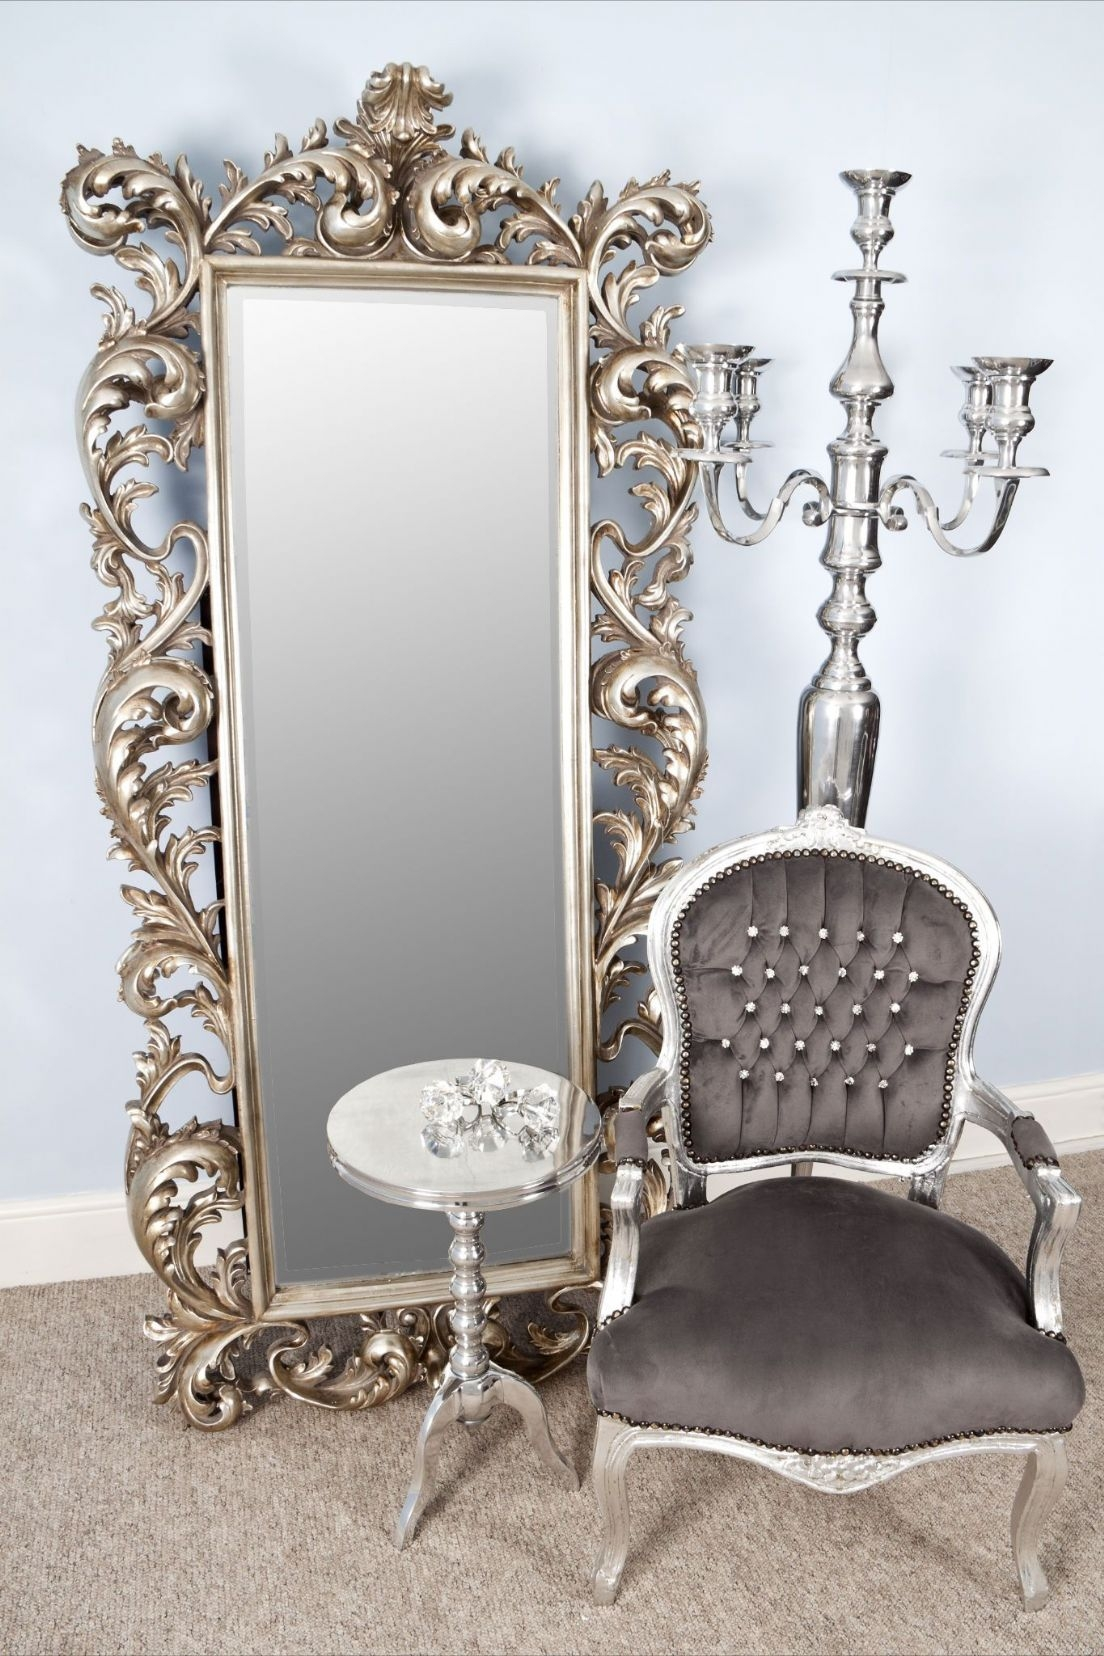 Nita Extra Large Silver Mirror 192 X 86 X 10 Cm Exclusive Mirrors Inside Rococo Mirrors Cheap (Image 12 of 15)